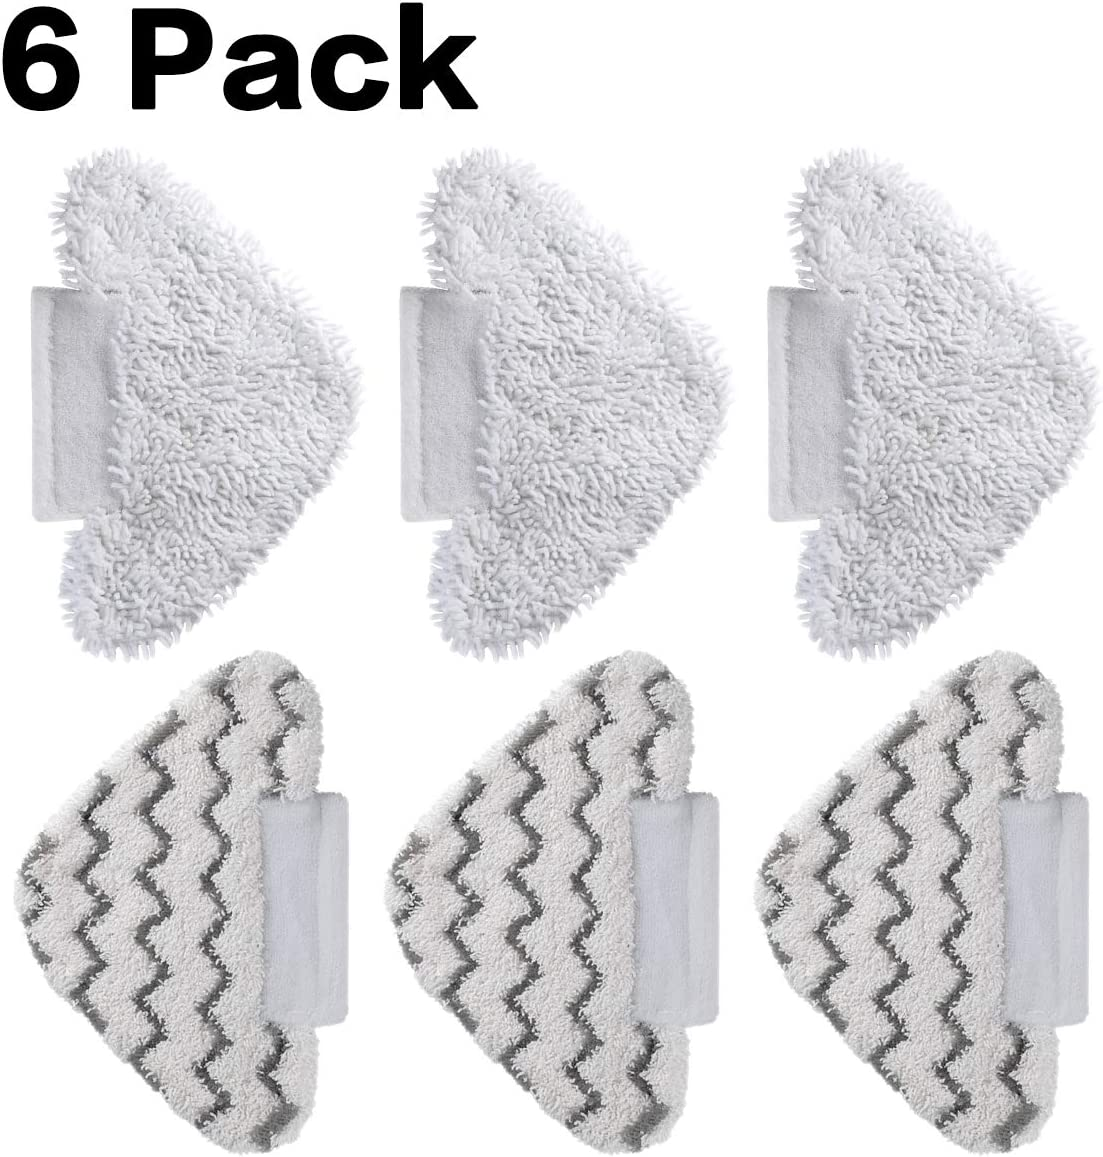 S3973D Washable Cleaning Mop Pads for One-Year Use FutureWay Steam Mop Replacement Pads for Shark S5003D 6-Pack